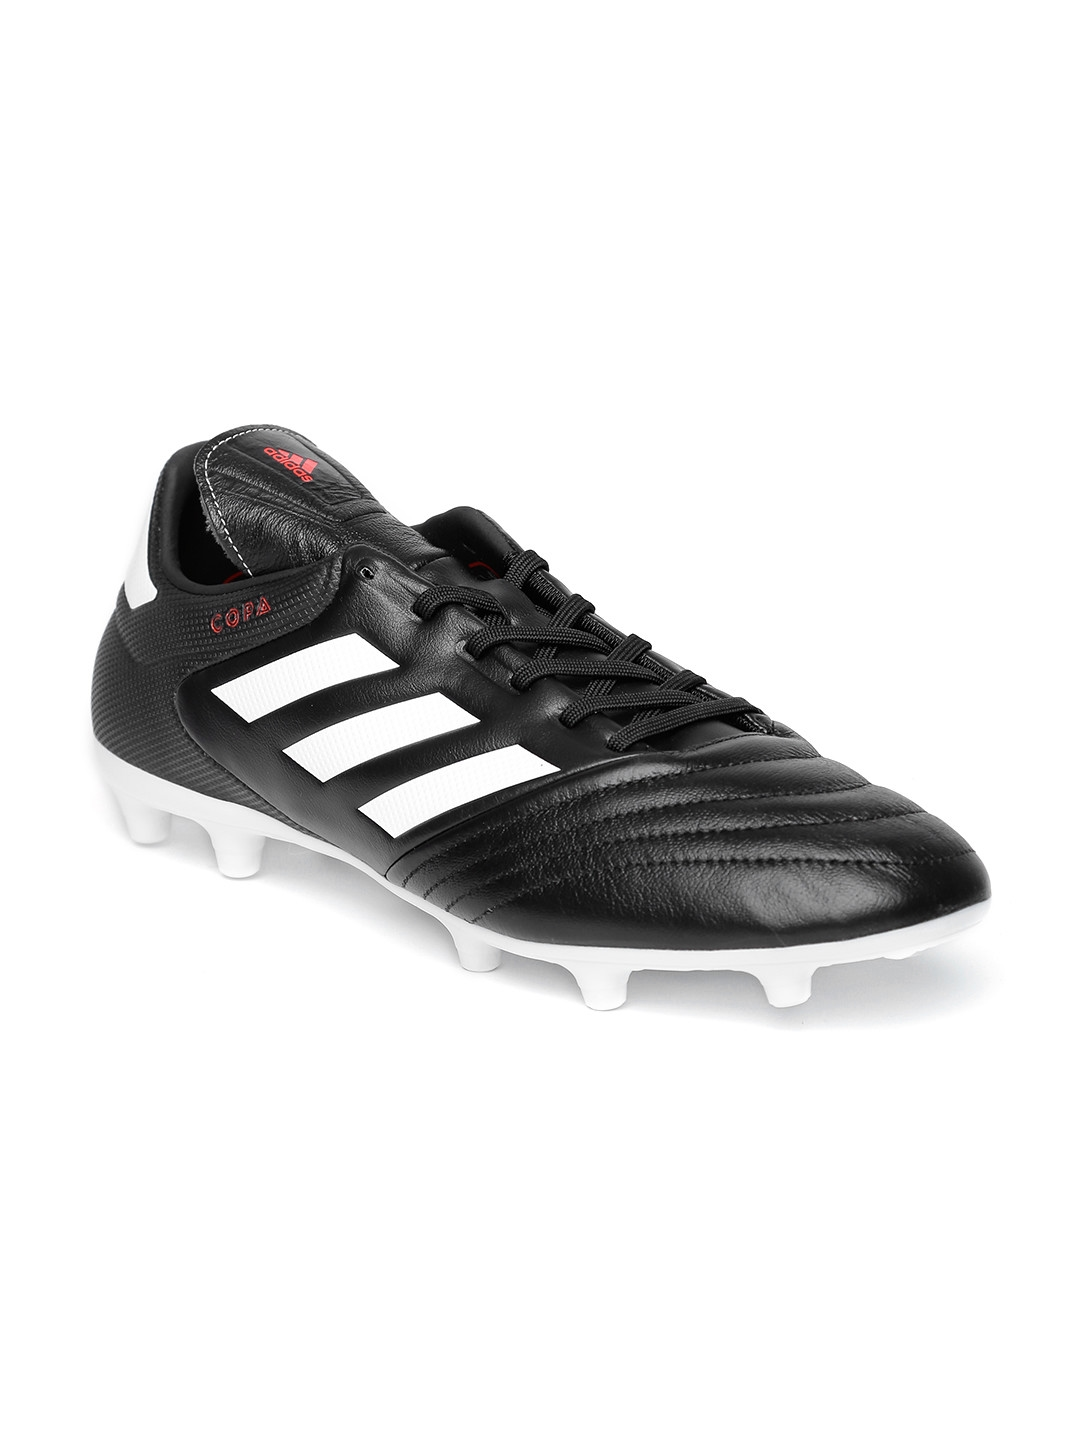 964a42593904 Buy ADIDAS Men Black COPA 17.3 FG Football Shoes - Sports Shoes for ...